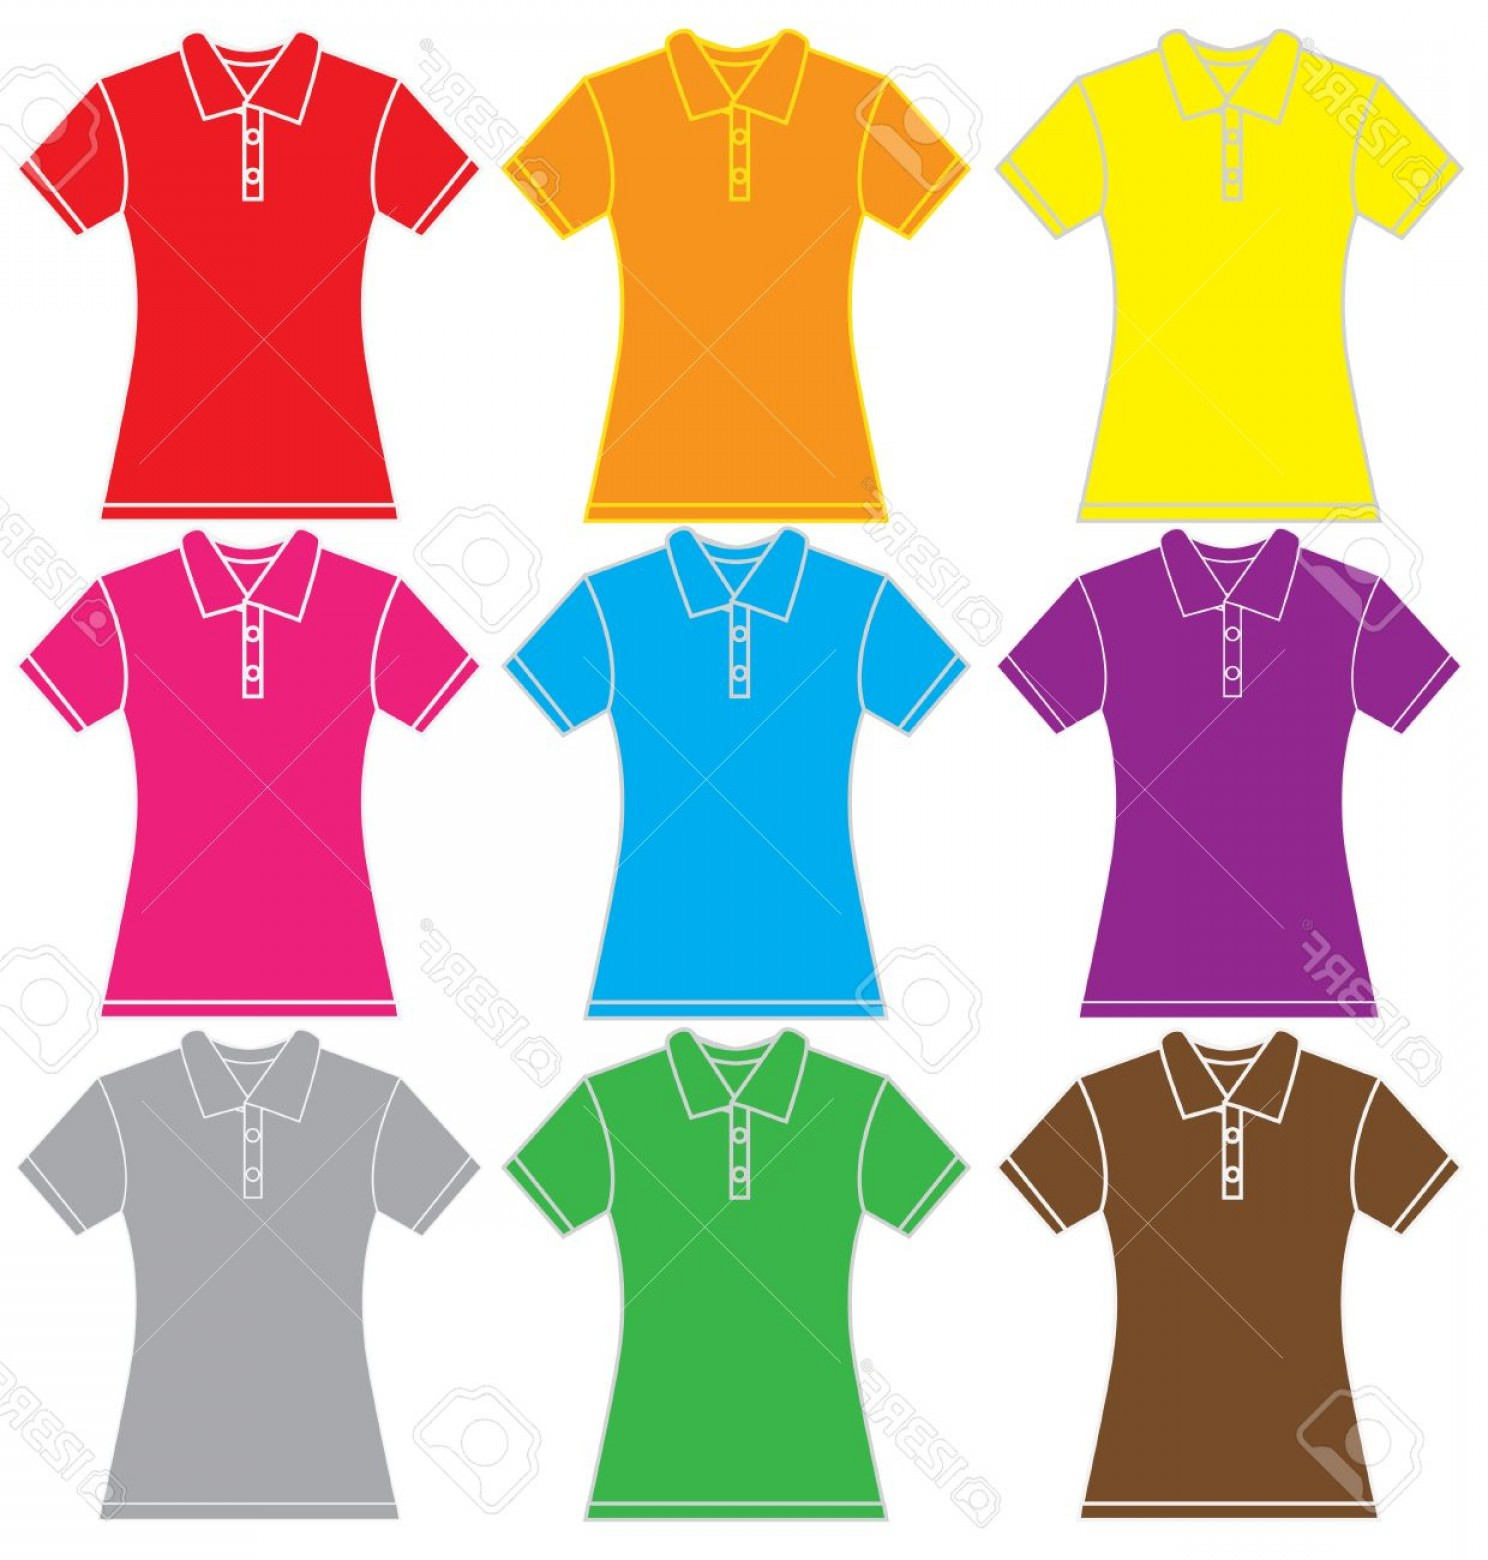 Female Polo Shirt Vector Template: Photostock Vector Illustration Of Women Polo Shirt Template In Many Color Isolated On White